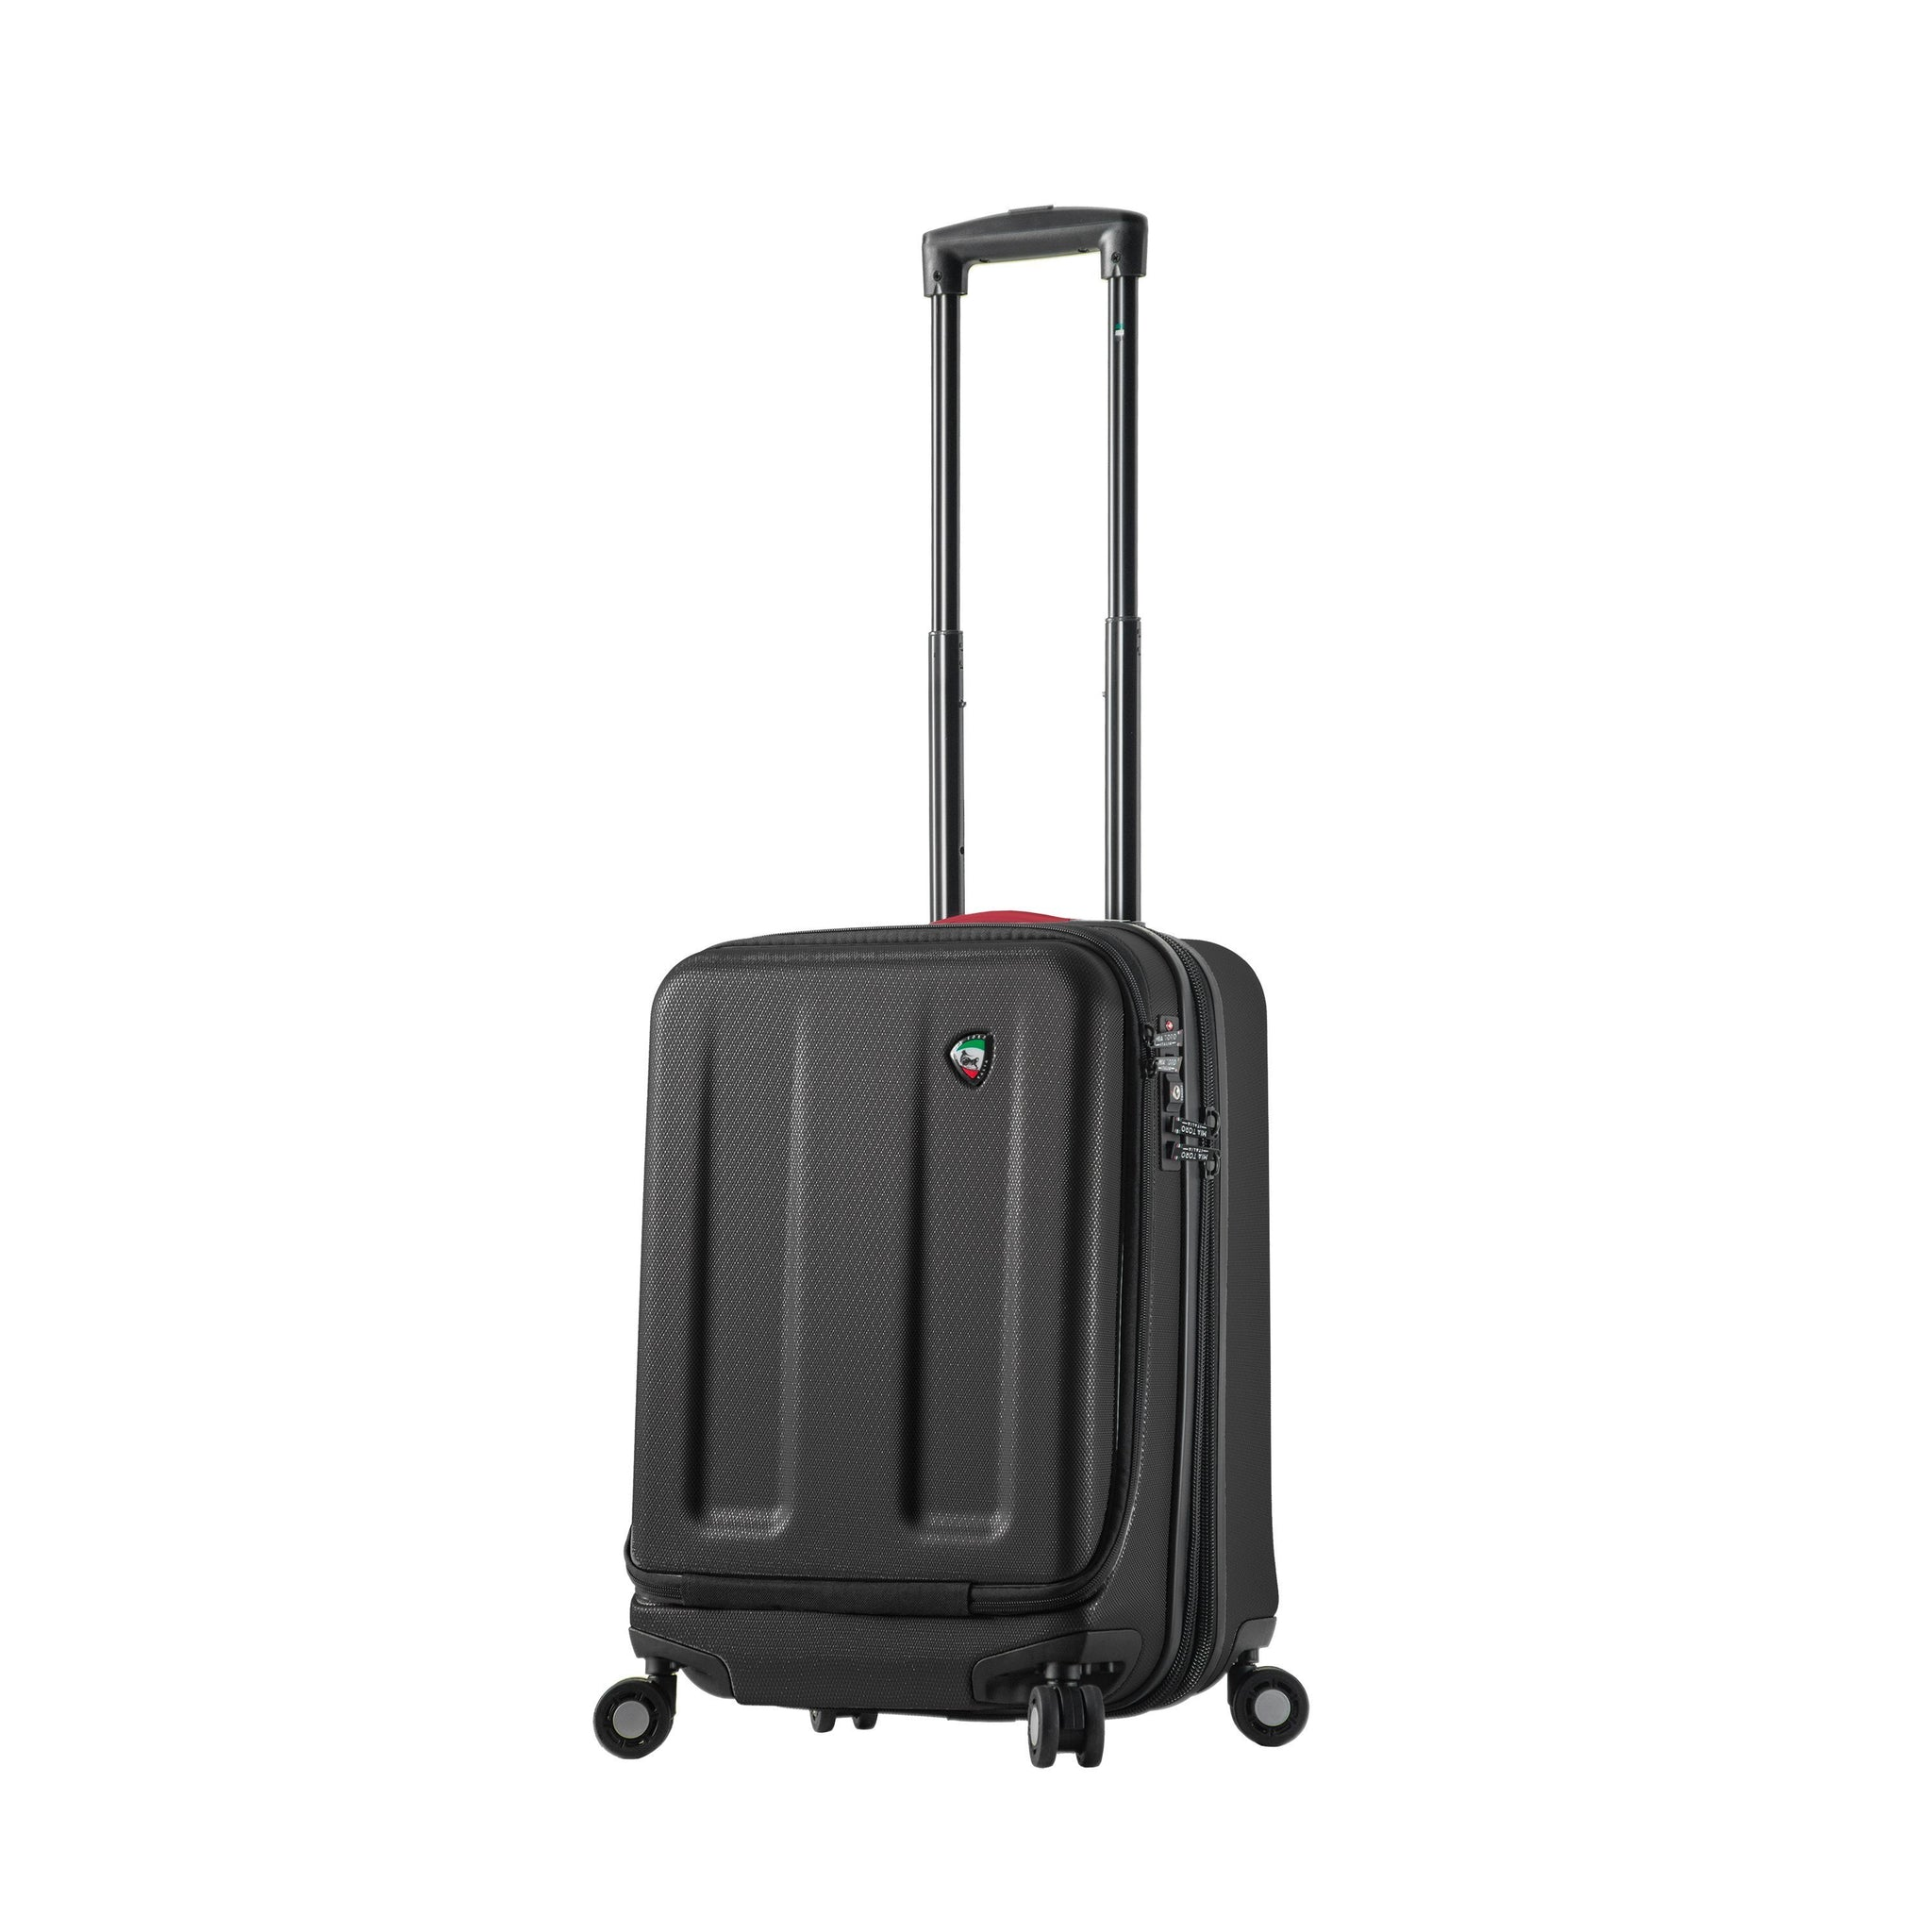 Esotico Hardside Spinner Carry-On